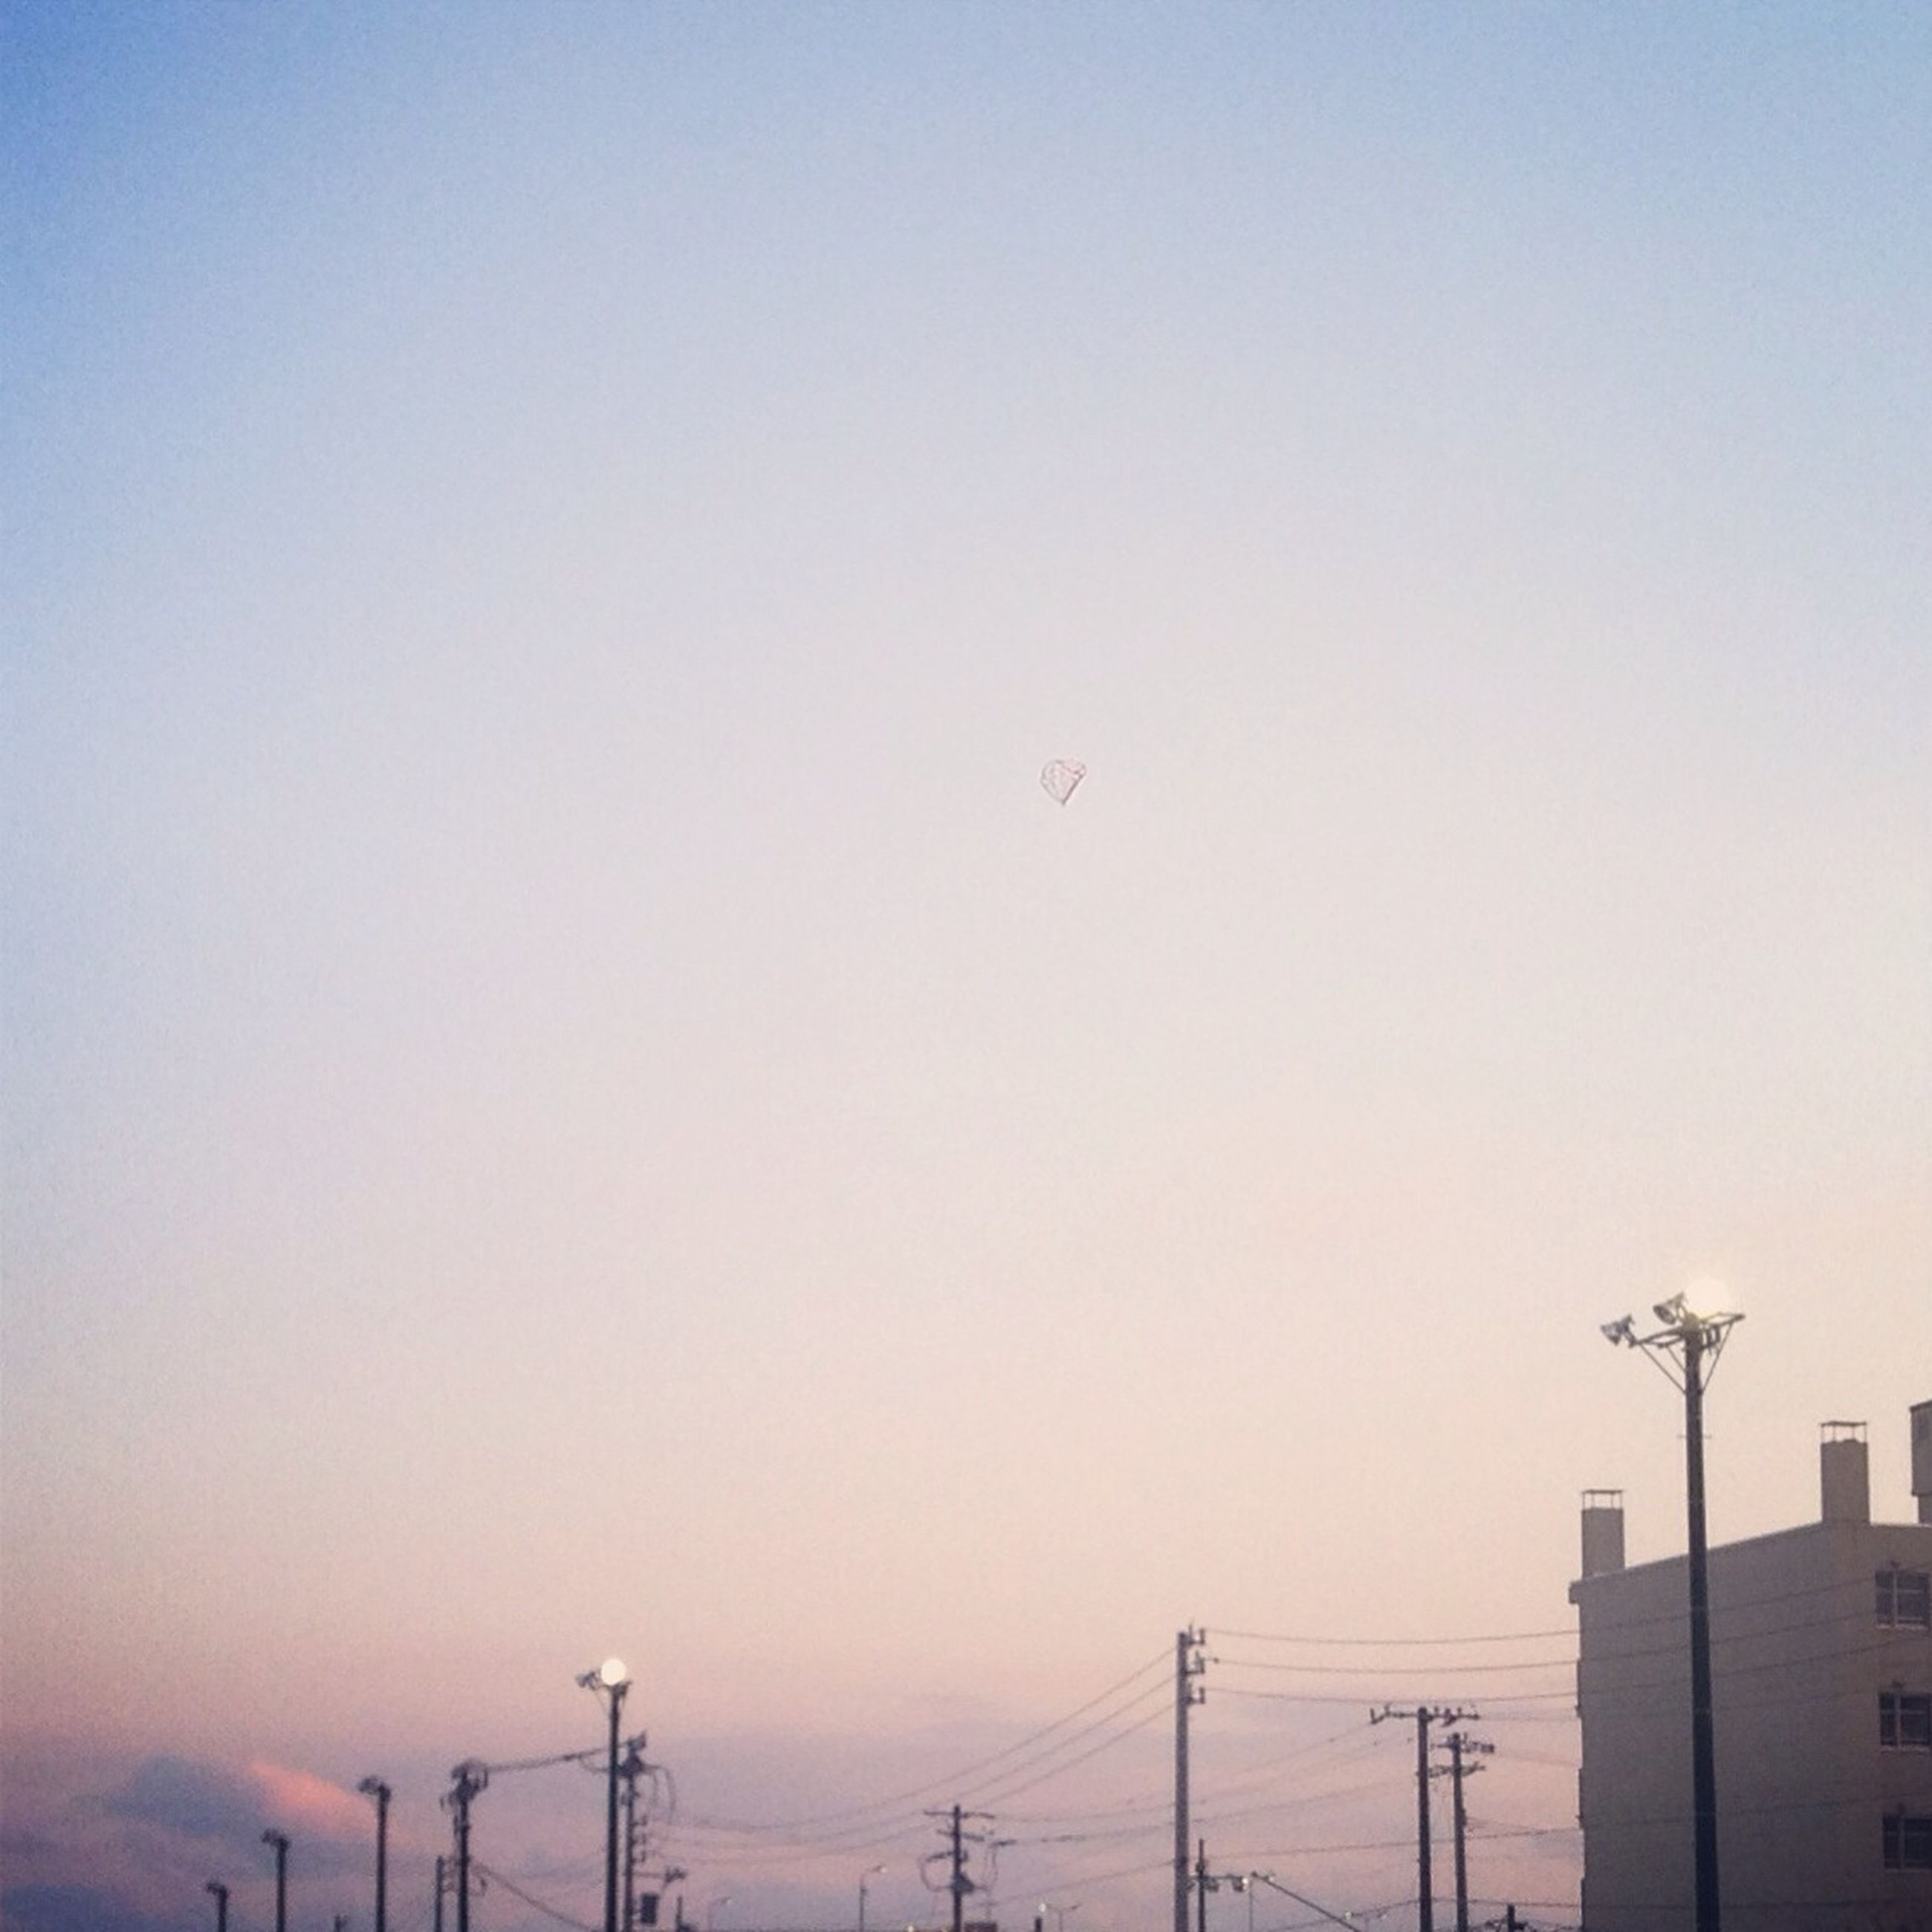 clear sky, copy space, low angle view, silhouette, sunset, technology, connection, fuel and power generation, electricity, sky, electricity pylon, power line, dusk, crane - construction machinery, outdoors, nature, industry, built structure, no people, street light